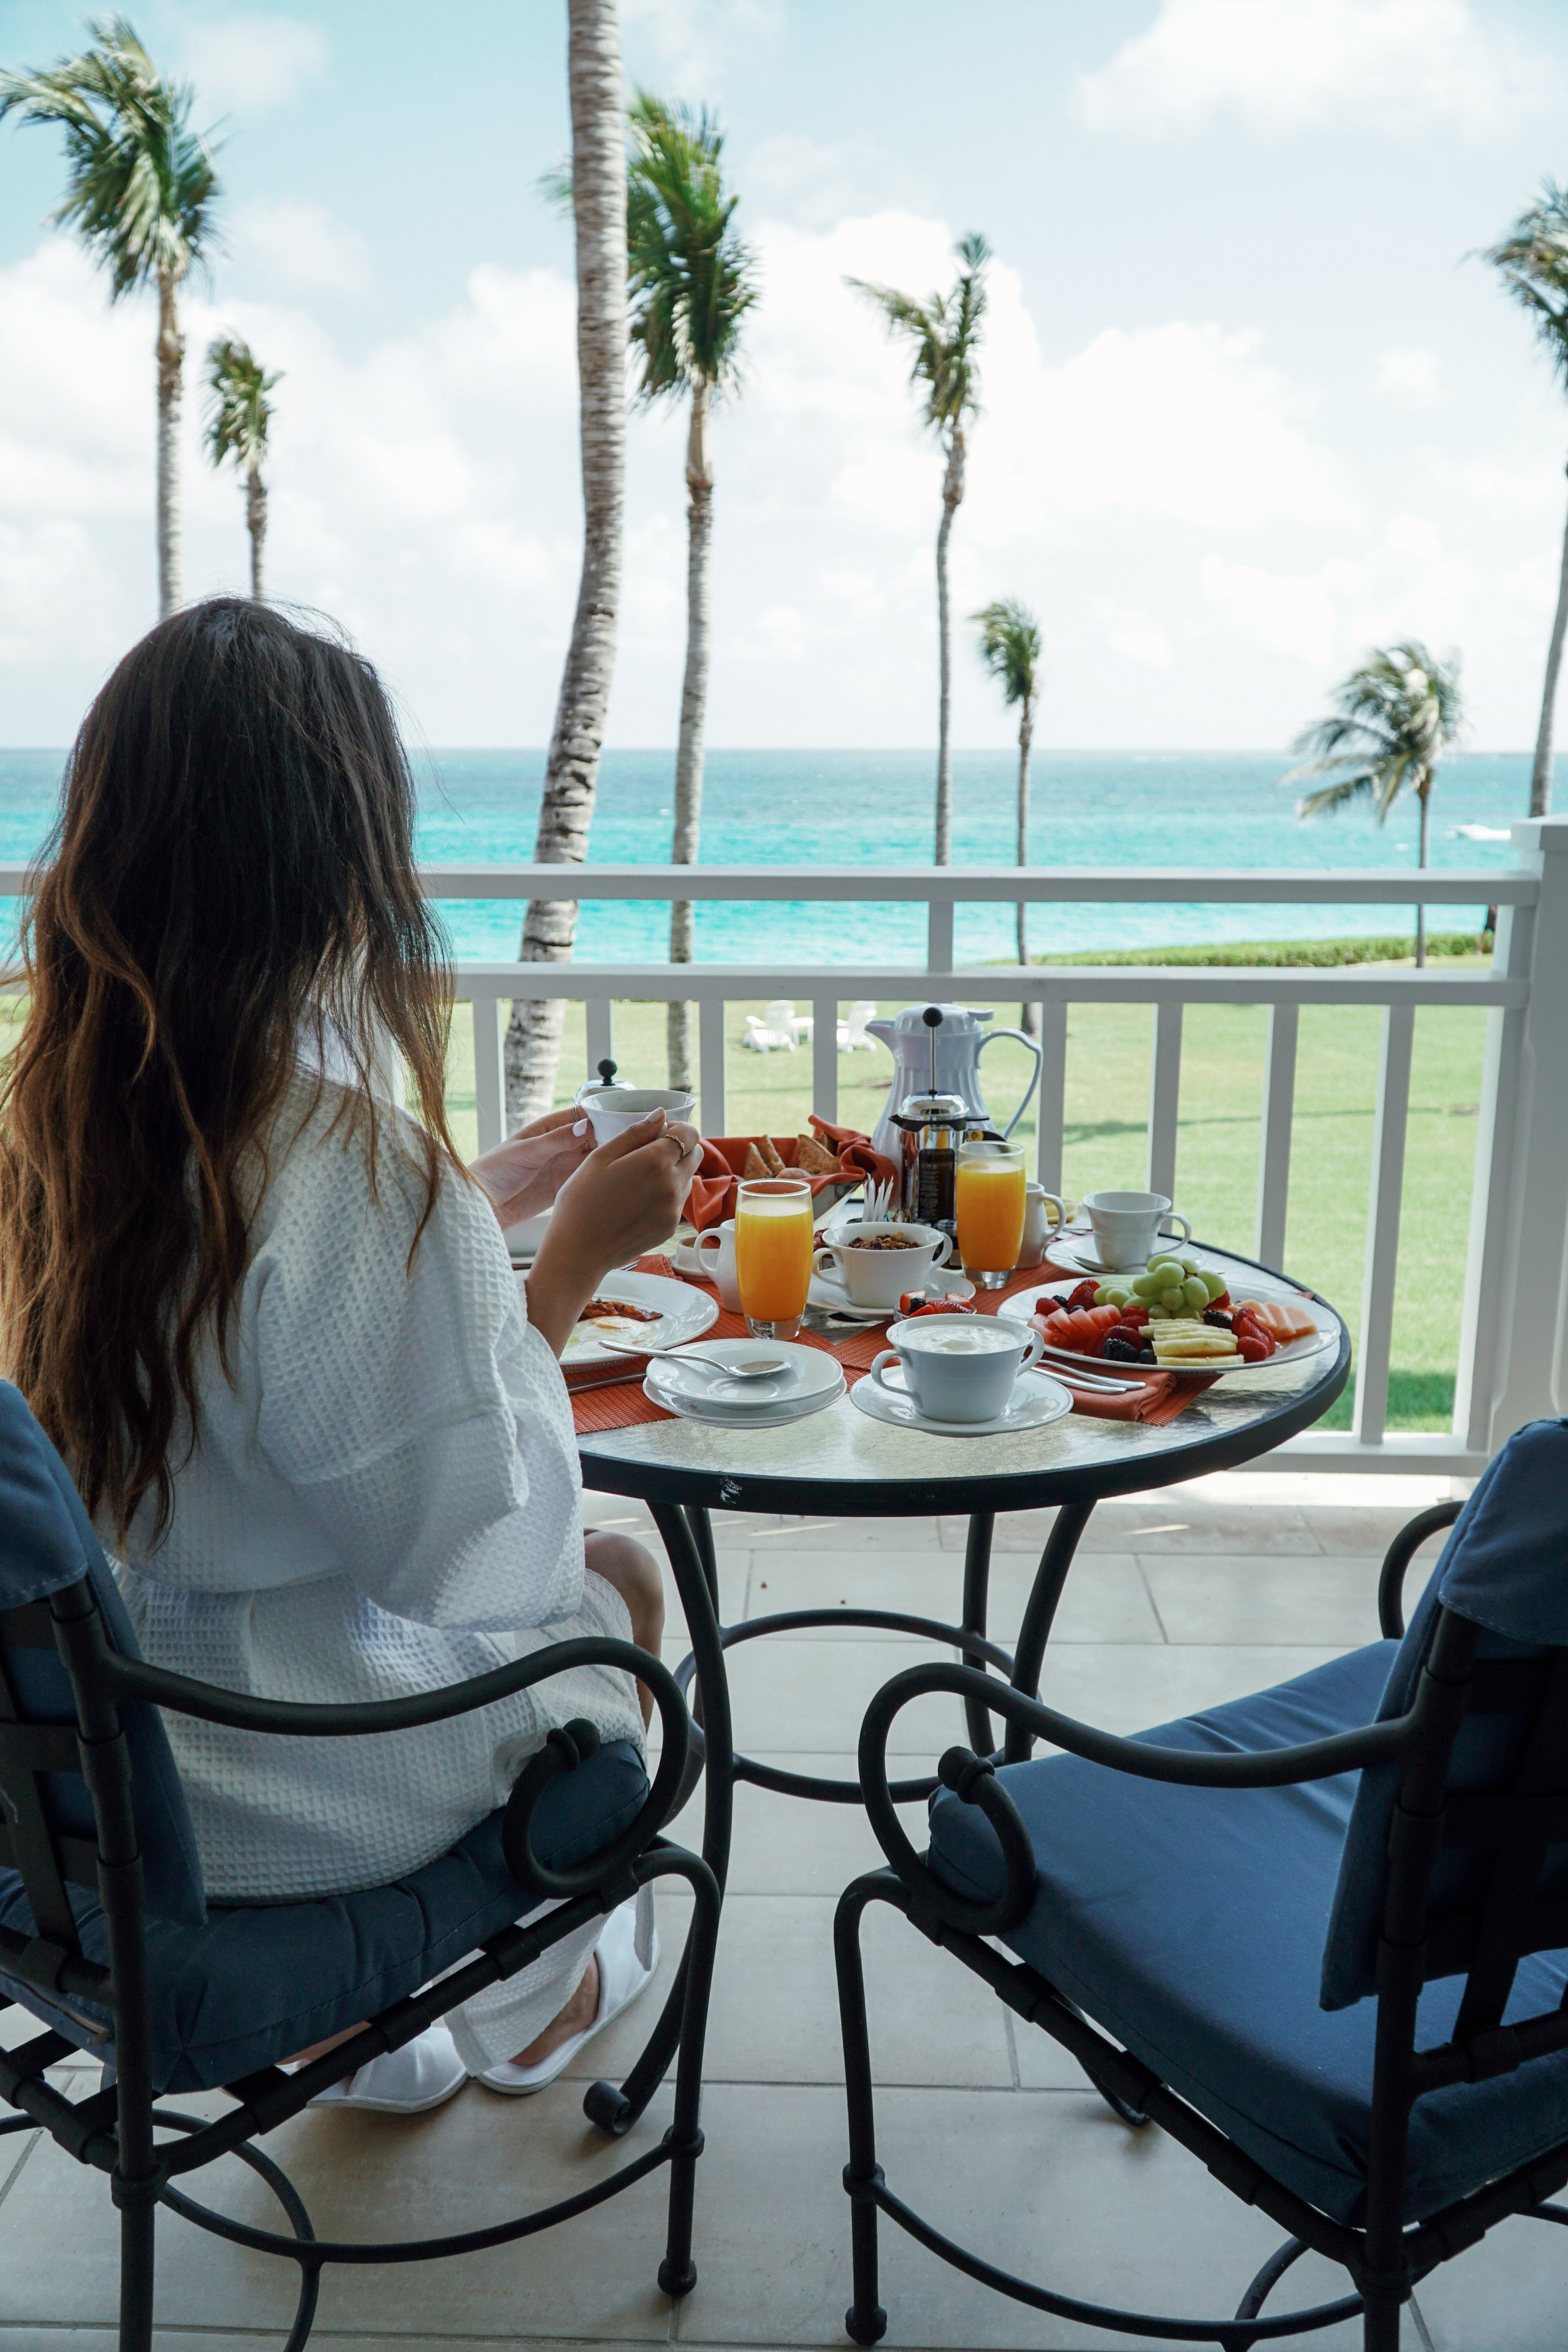 Julia Friedman enjoys breakfast with a view at the One&Only Ocean Club in the Bahamas.